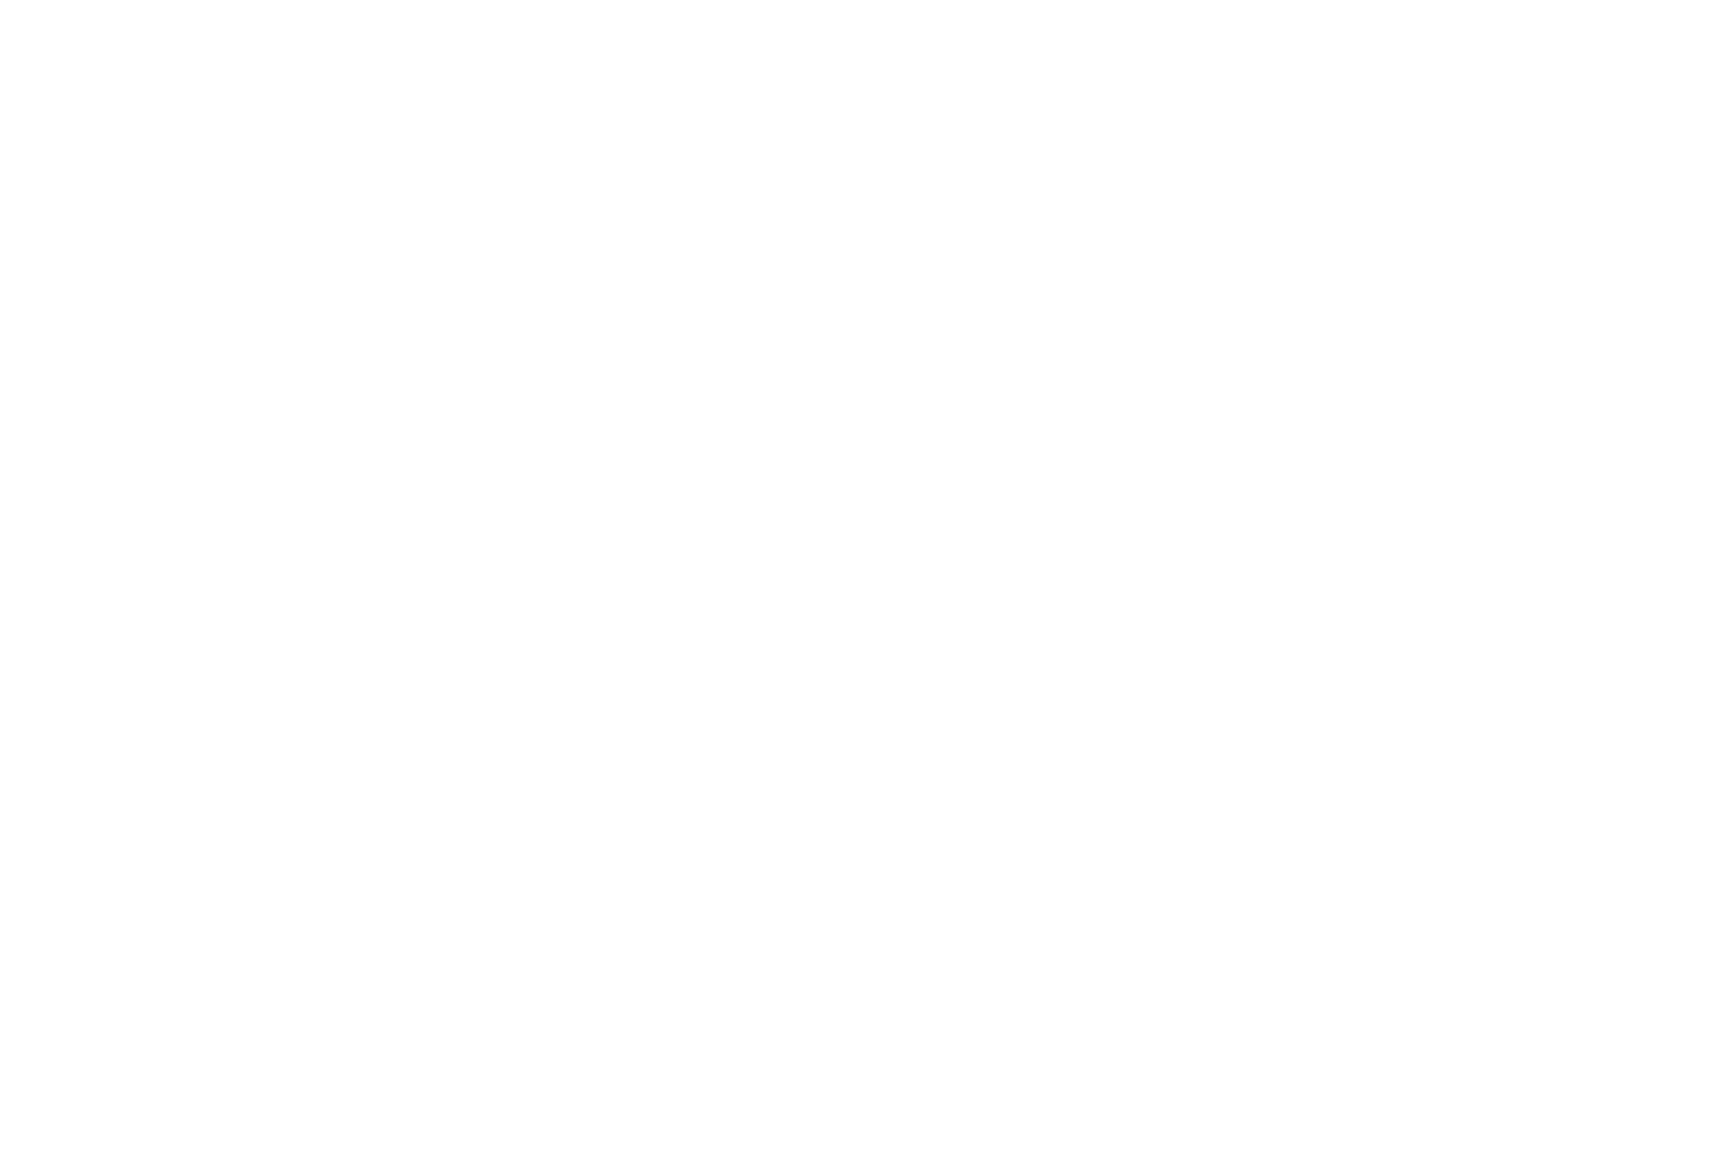 OFFICIAL SELECTION - Napa Valley Film Festival - 2013.png